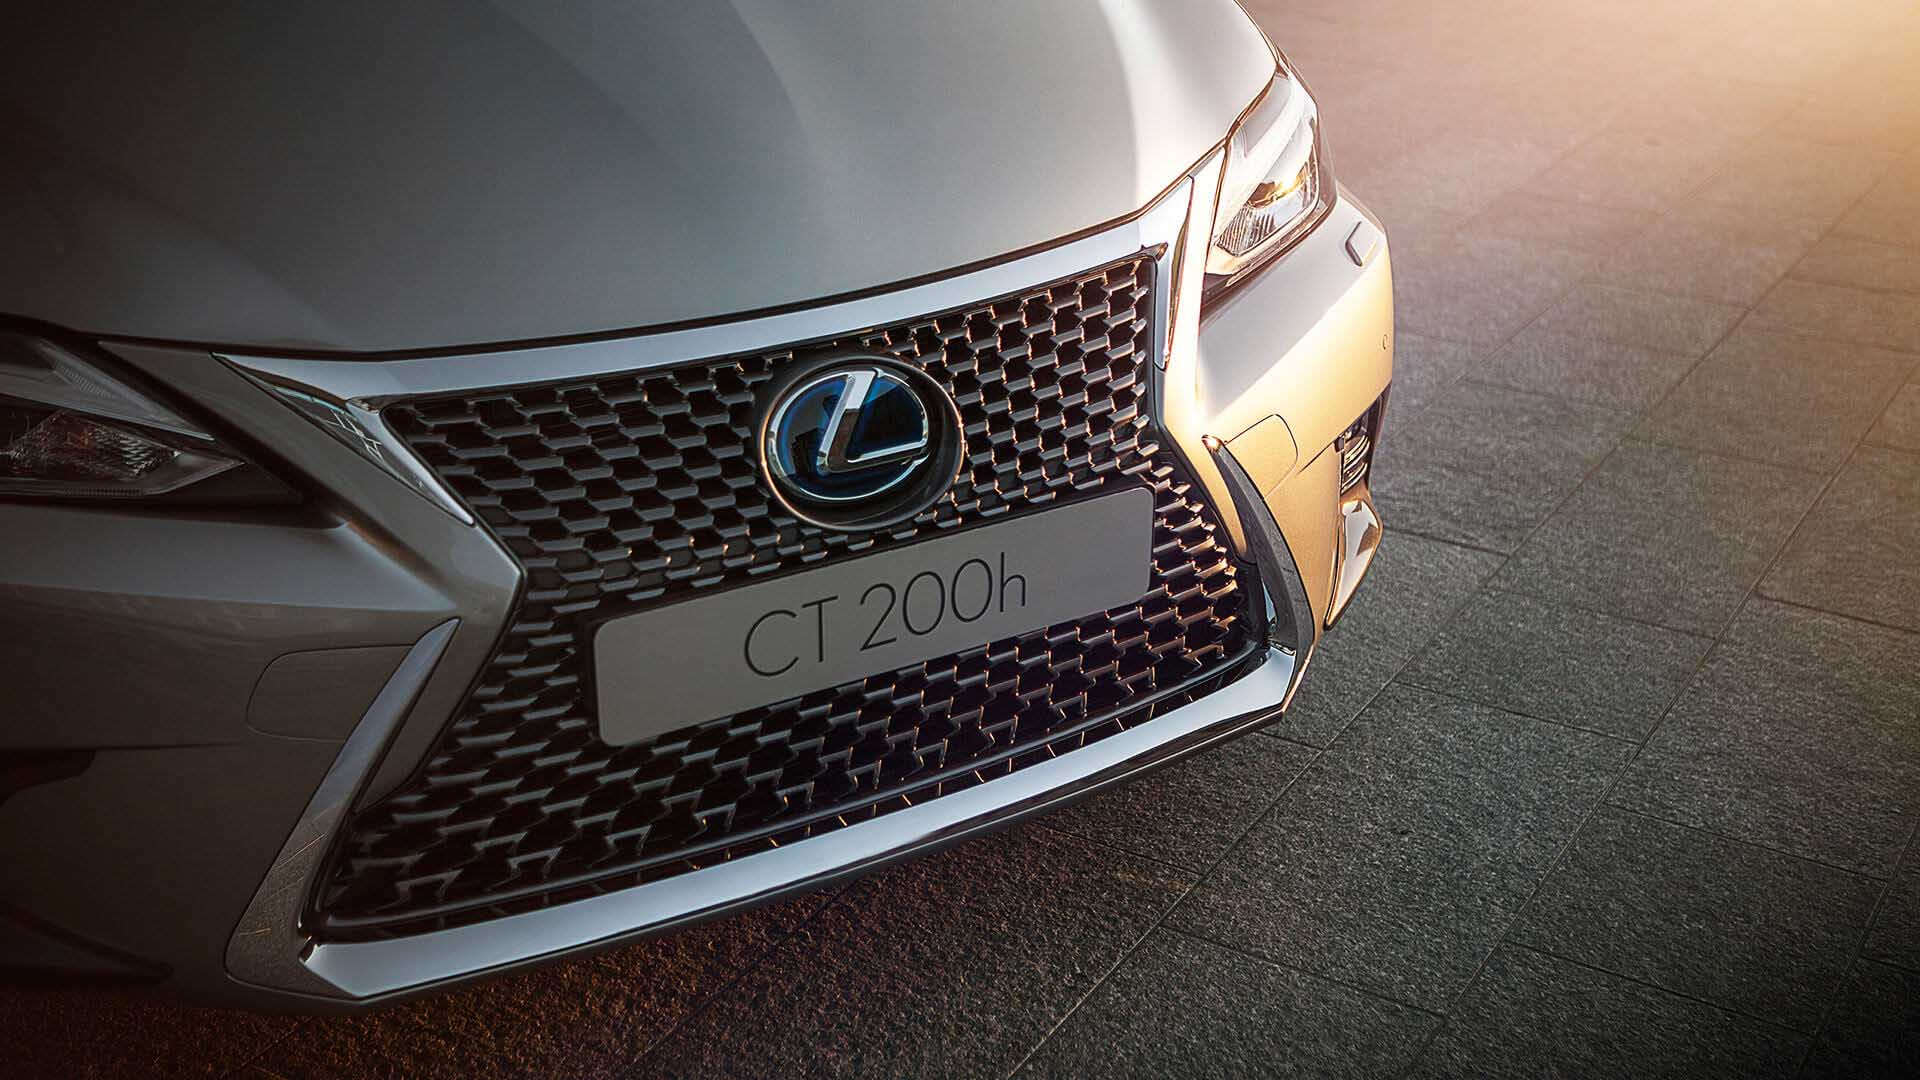 2018 lexus ct 200h my18 features spindle grille